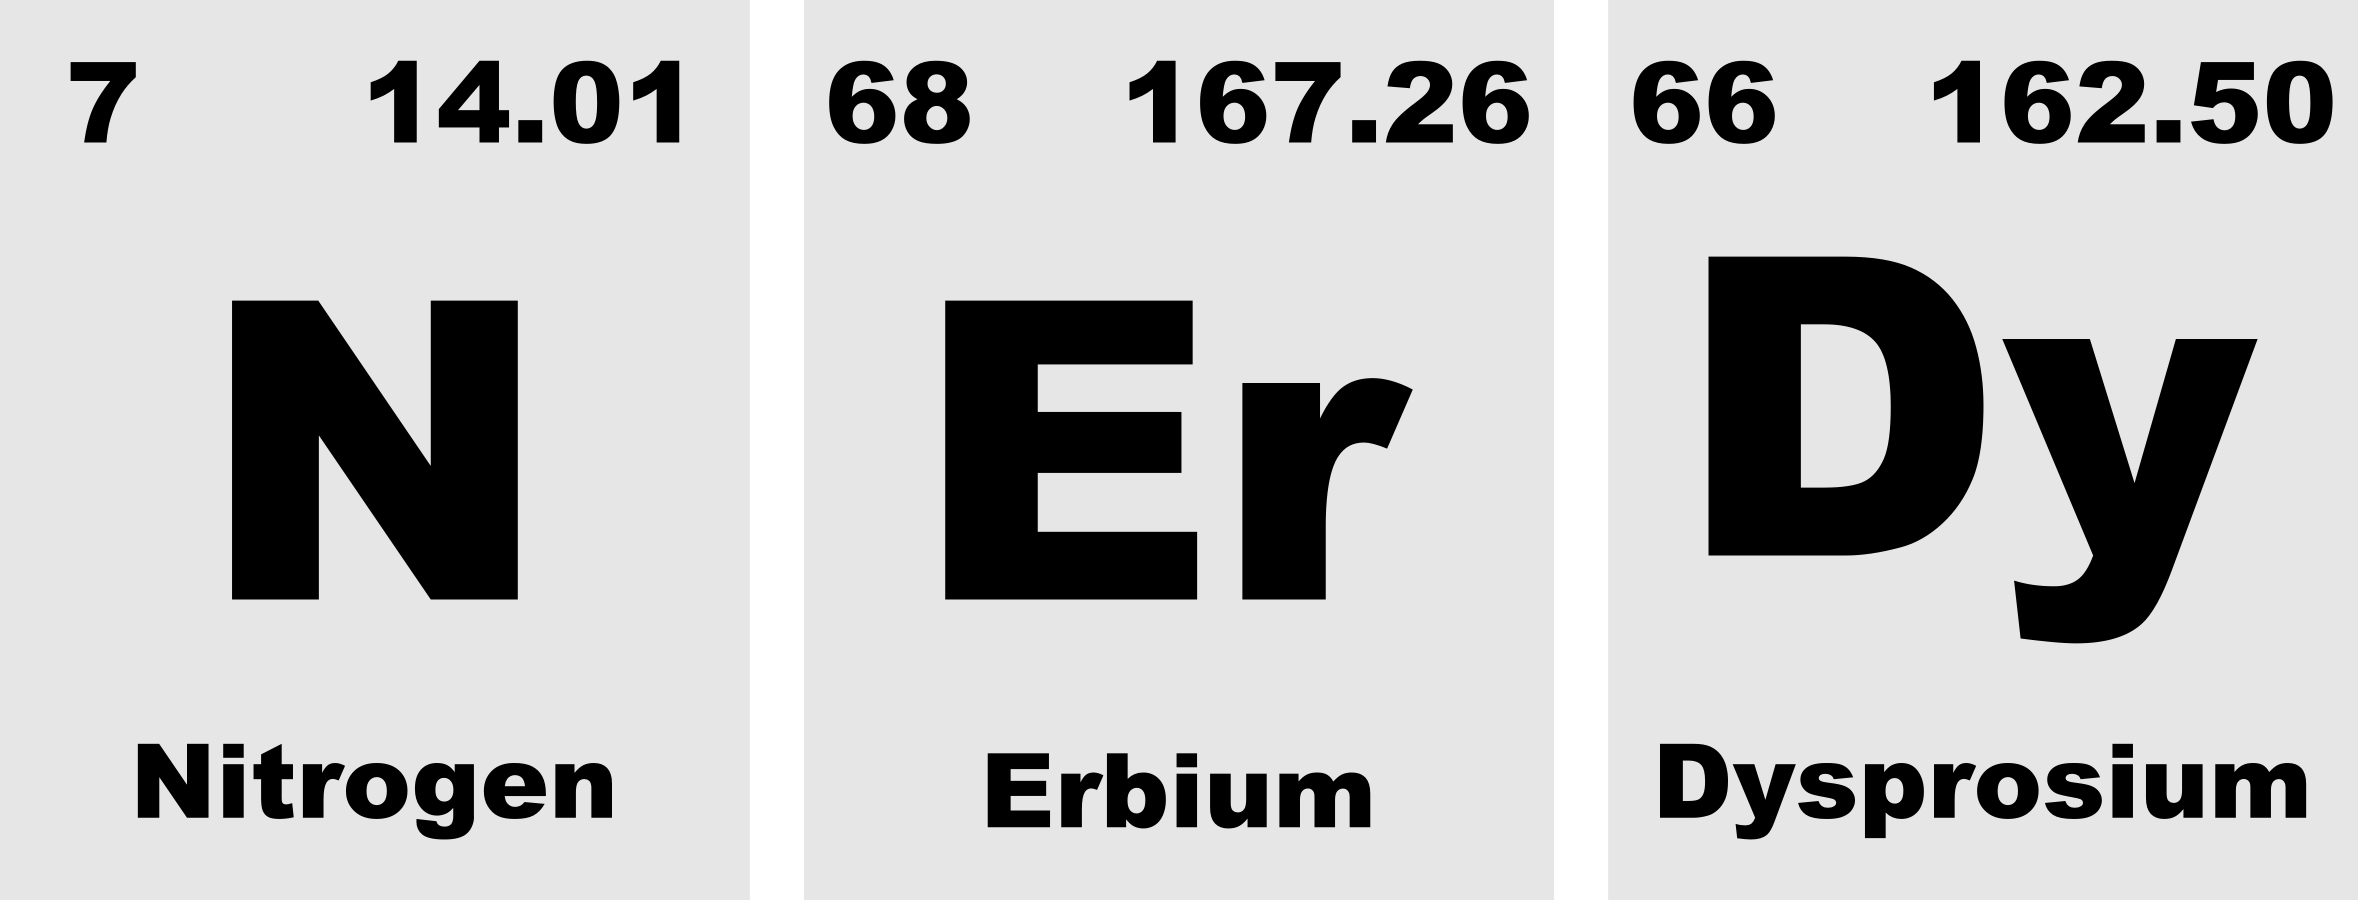 Nerdy Periodic Table